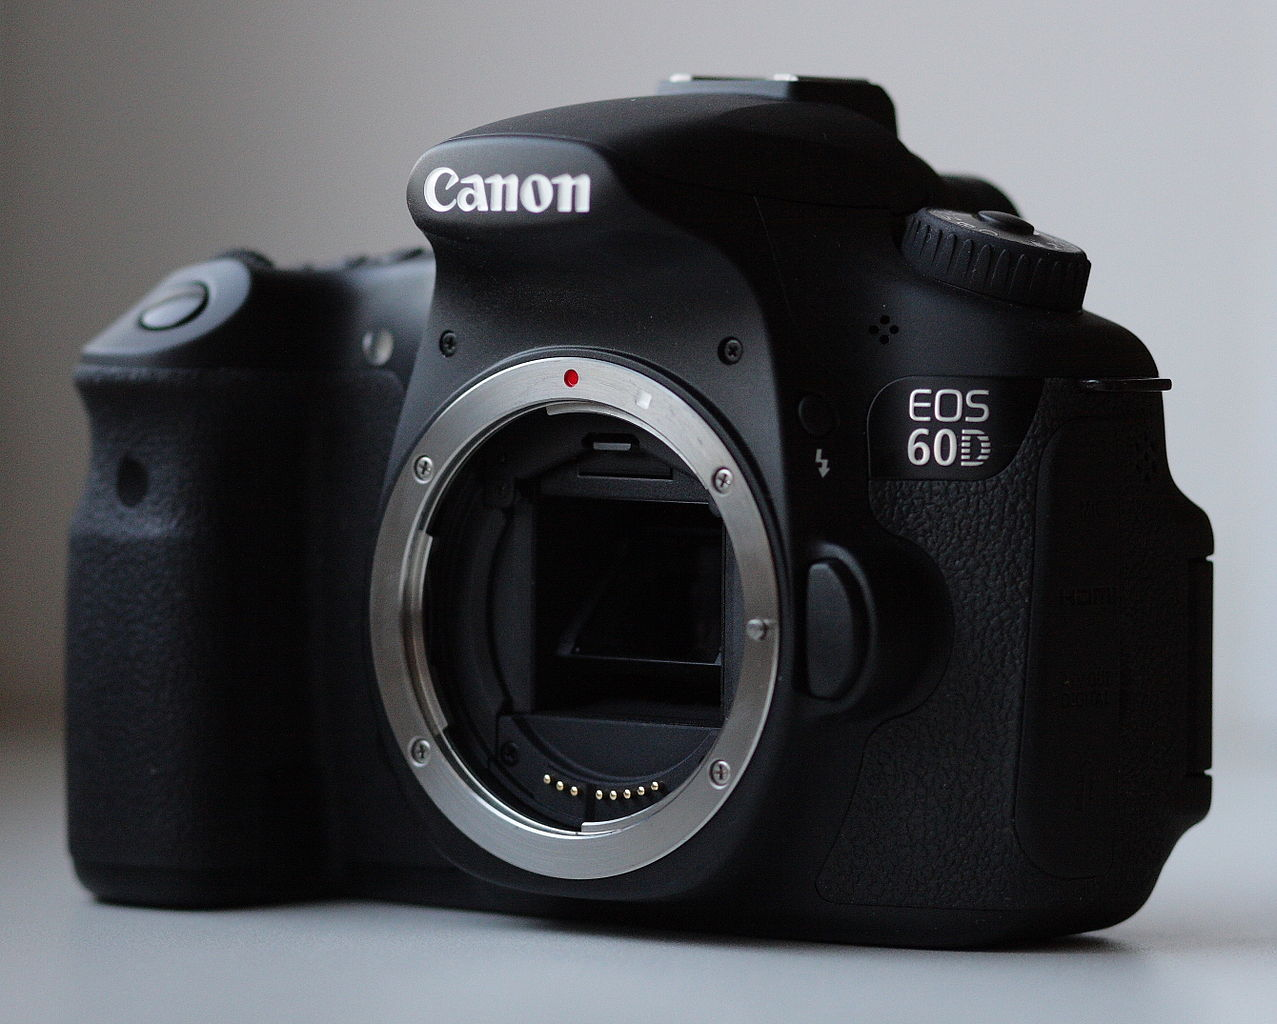 Imposing Canon Eos Some Refurbished Canon Deals Before Coming Camera News At Canon Refurbished Cameras Reviews Canon Refurbished Cameras Uk dpreview Canon Refurbished Cameras